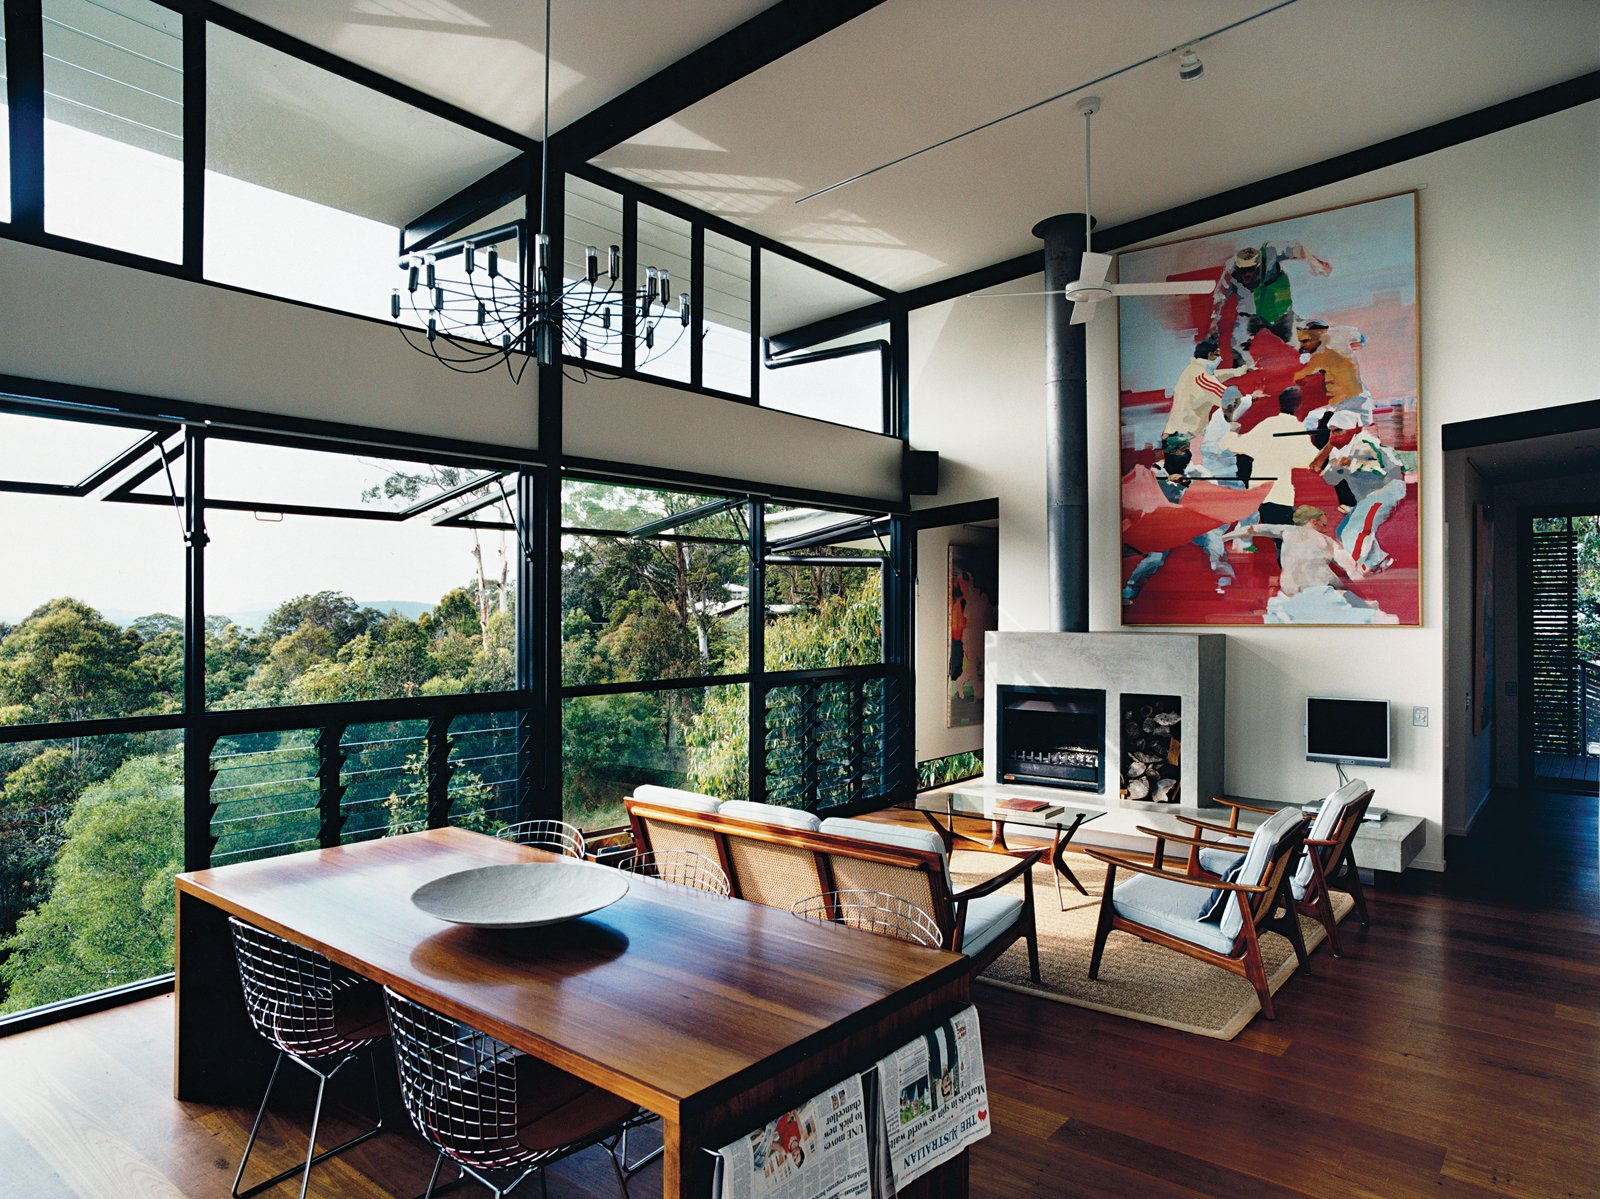 Living Room, Medium Hardwood Floor, Standard Layout Fireplace, Chair, Wood Burning Fireplace, Pendant Lighting, and Sofa The open-plan living room was inspired by the couple's previous residence, a London loft. The paintings are by Dunlop. The louvered floor-to-ceiling windows, ceiling fan, and sliding deck doors usher in sea breezes and encourage good air circulation.  Photo 4 of 12 in Hillside Family Home in Australia